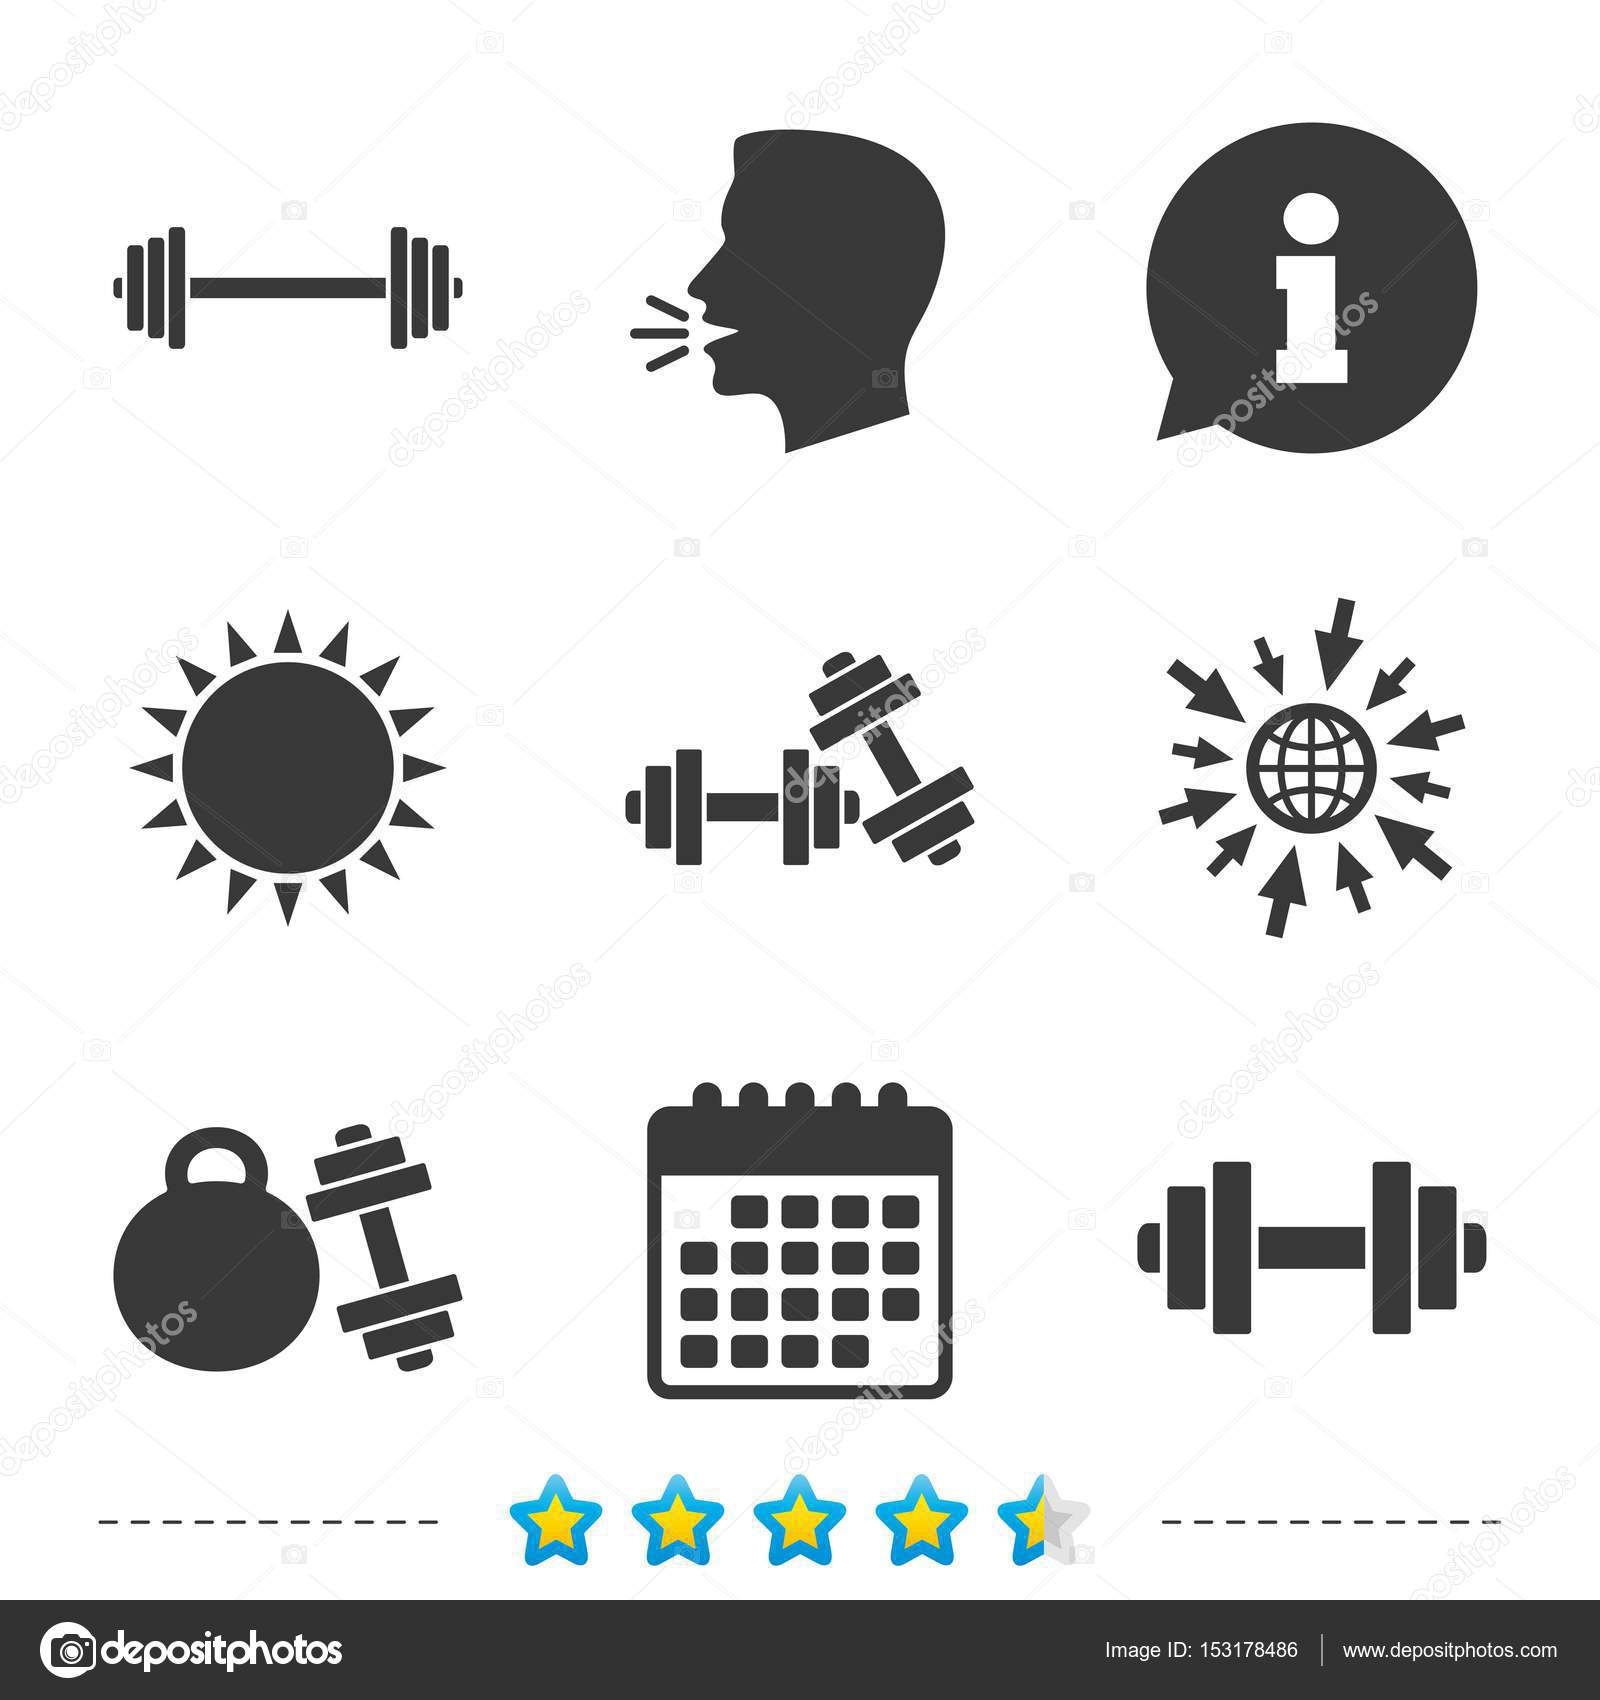 Dumbbells icons fitness sport symbols stock vector dumbbells sign icons fitness sport symbols gym workout equipment information go to web and calendar icons sun and loud speak symbol biocorpaavc